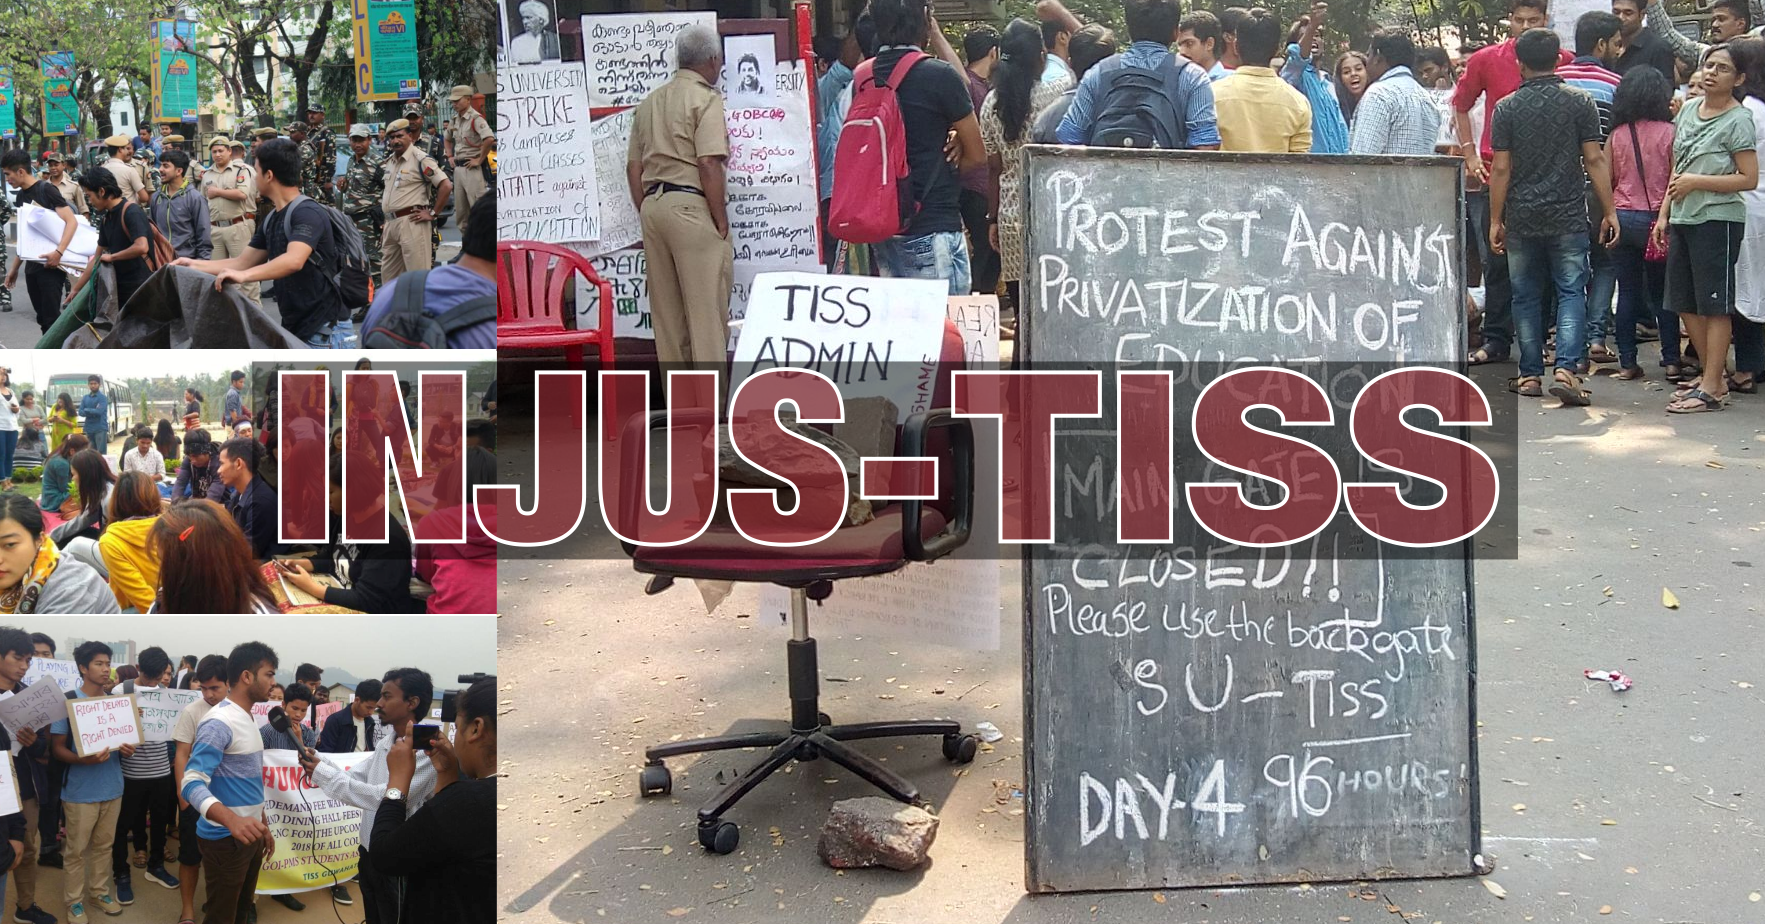 CJP Appeals to MHRD to intervene and secure justice for TISS students